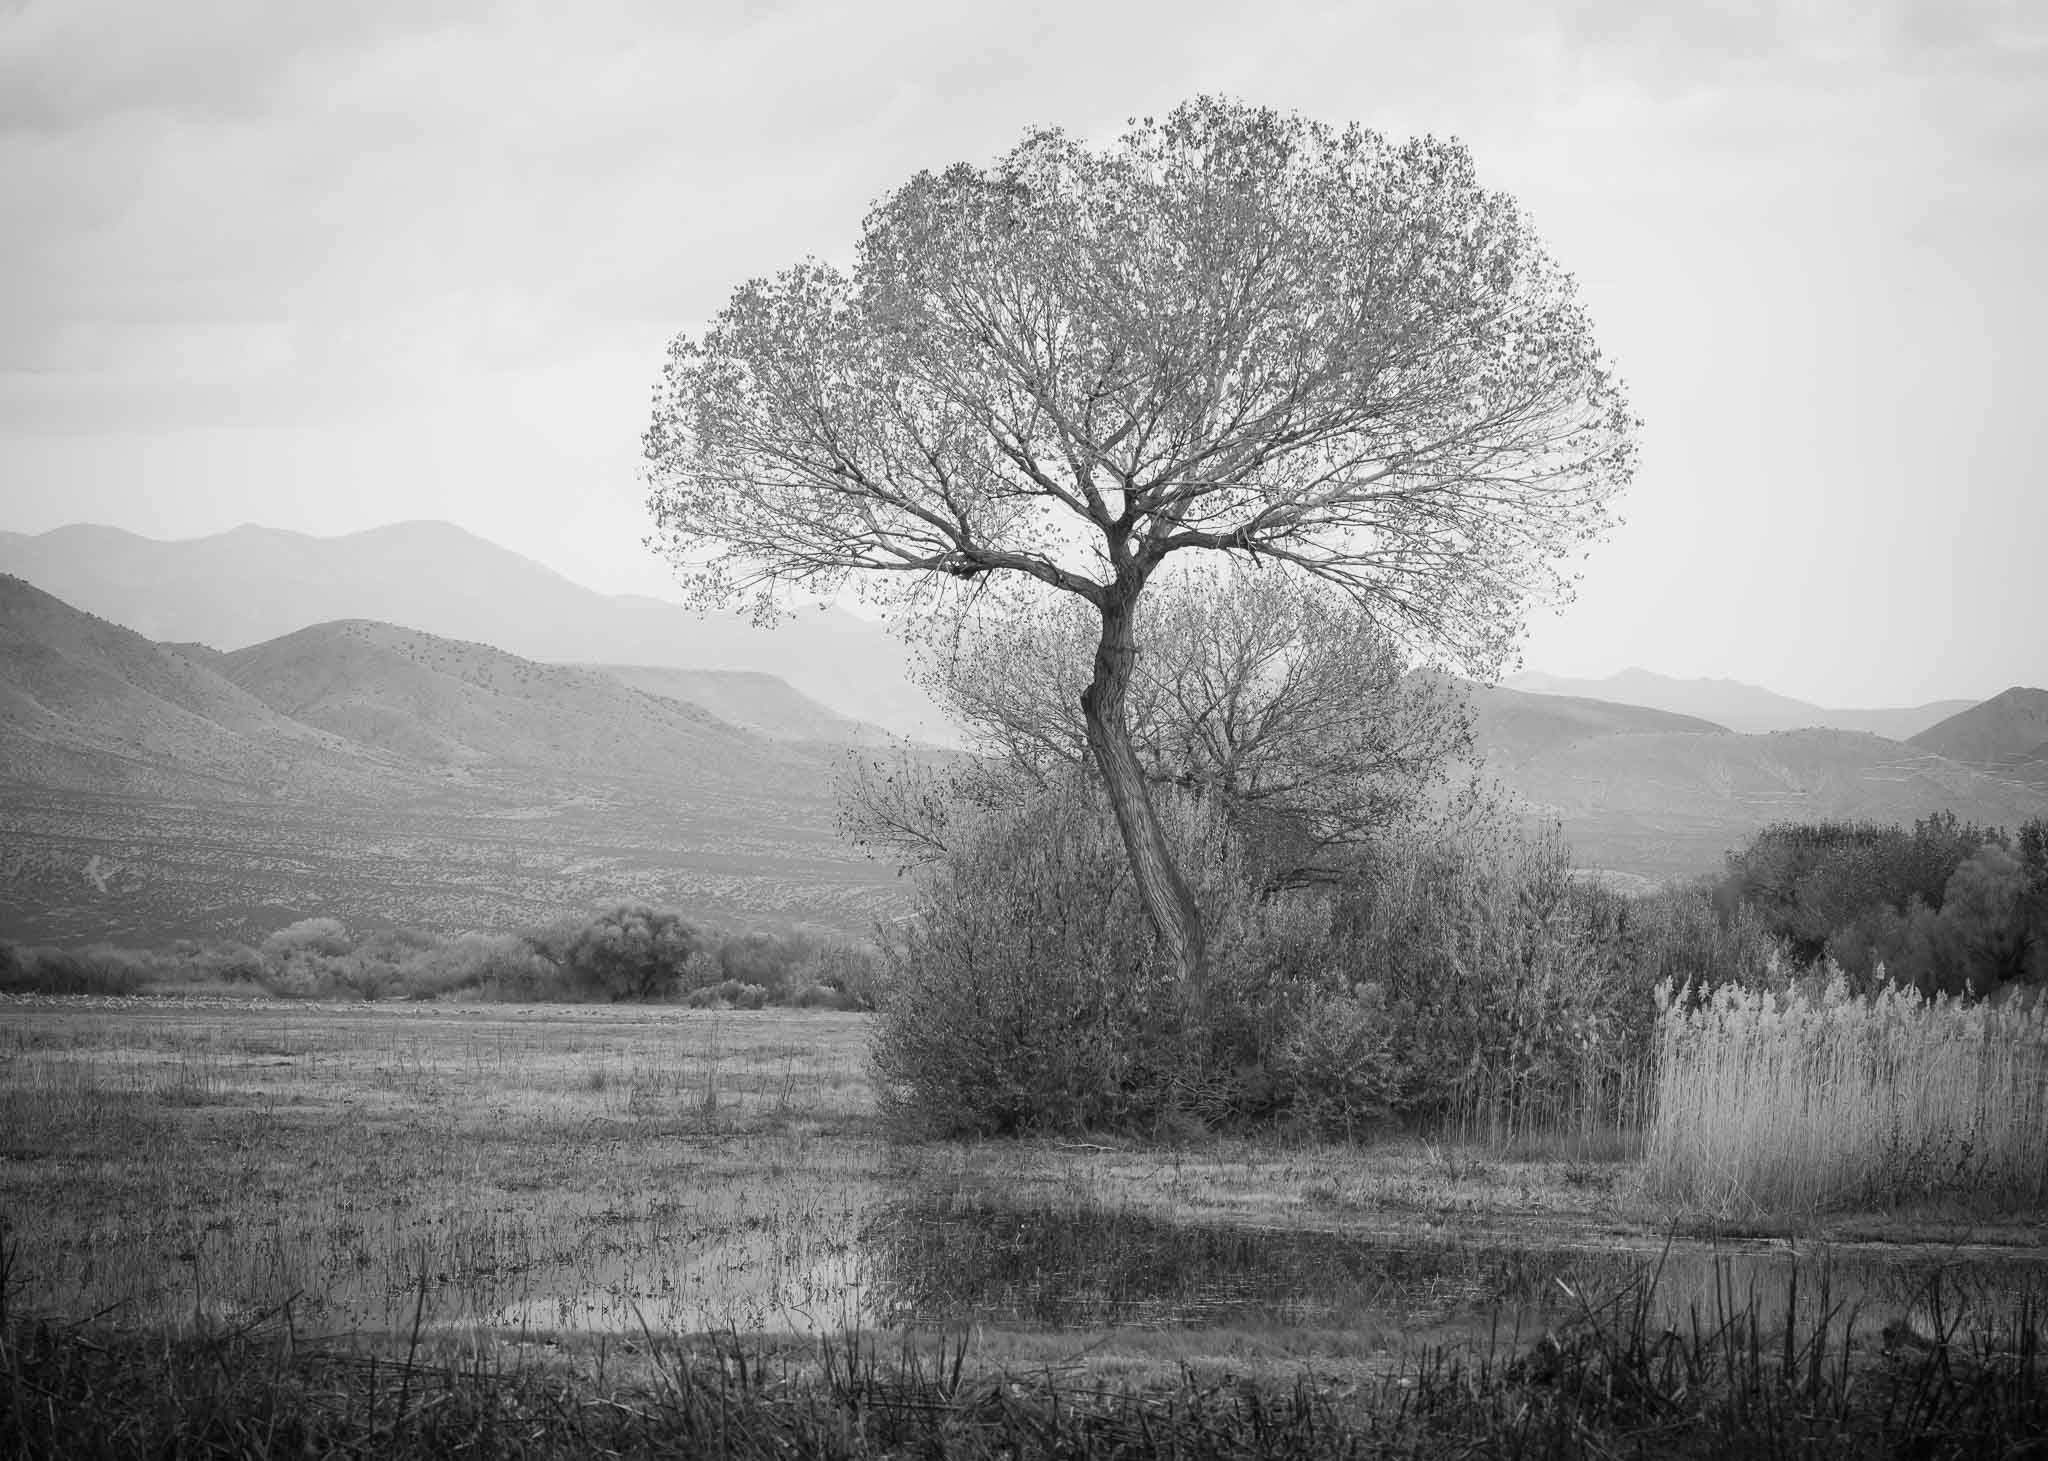 Tree at Bosque del Apache National Wildlife Refuge, San Antonio NM, November 15, 2015